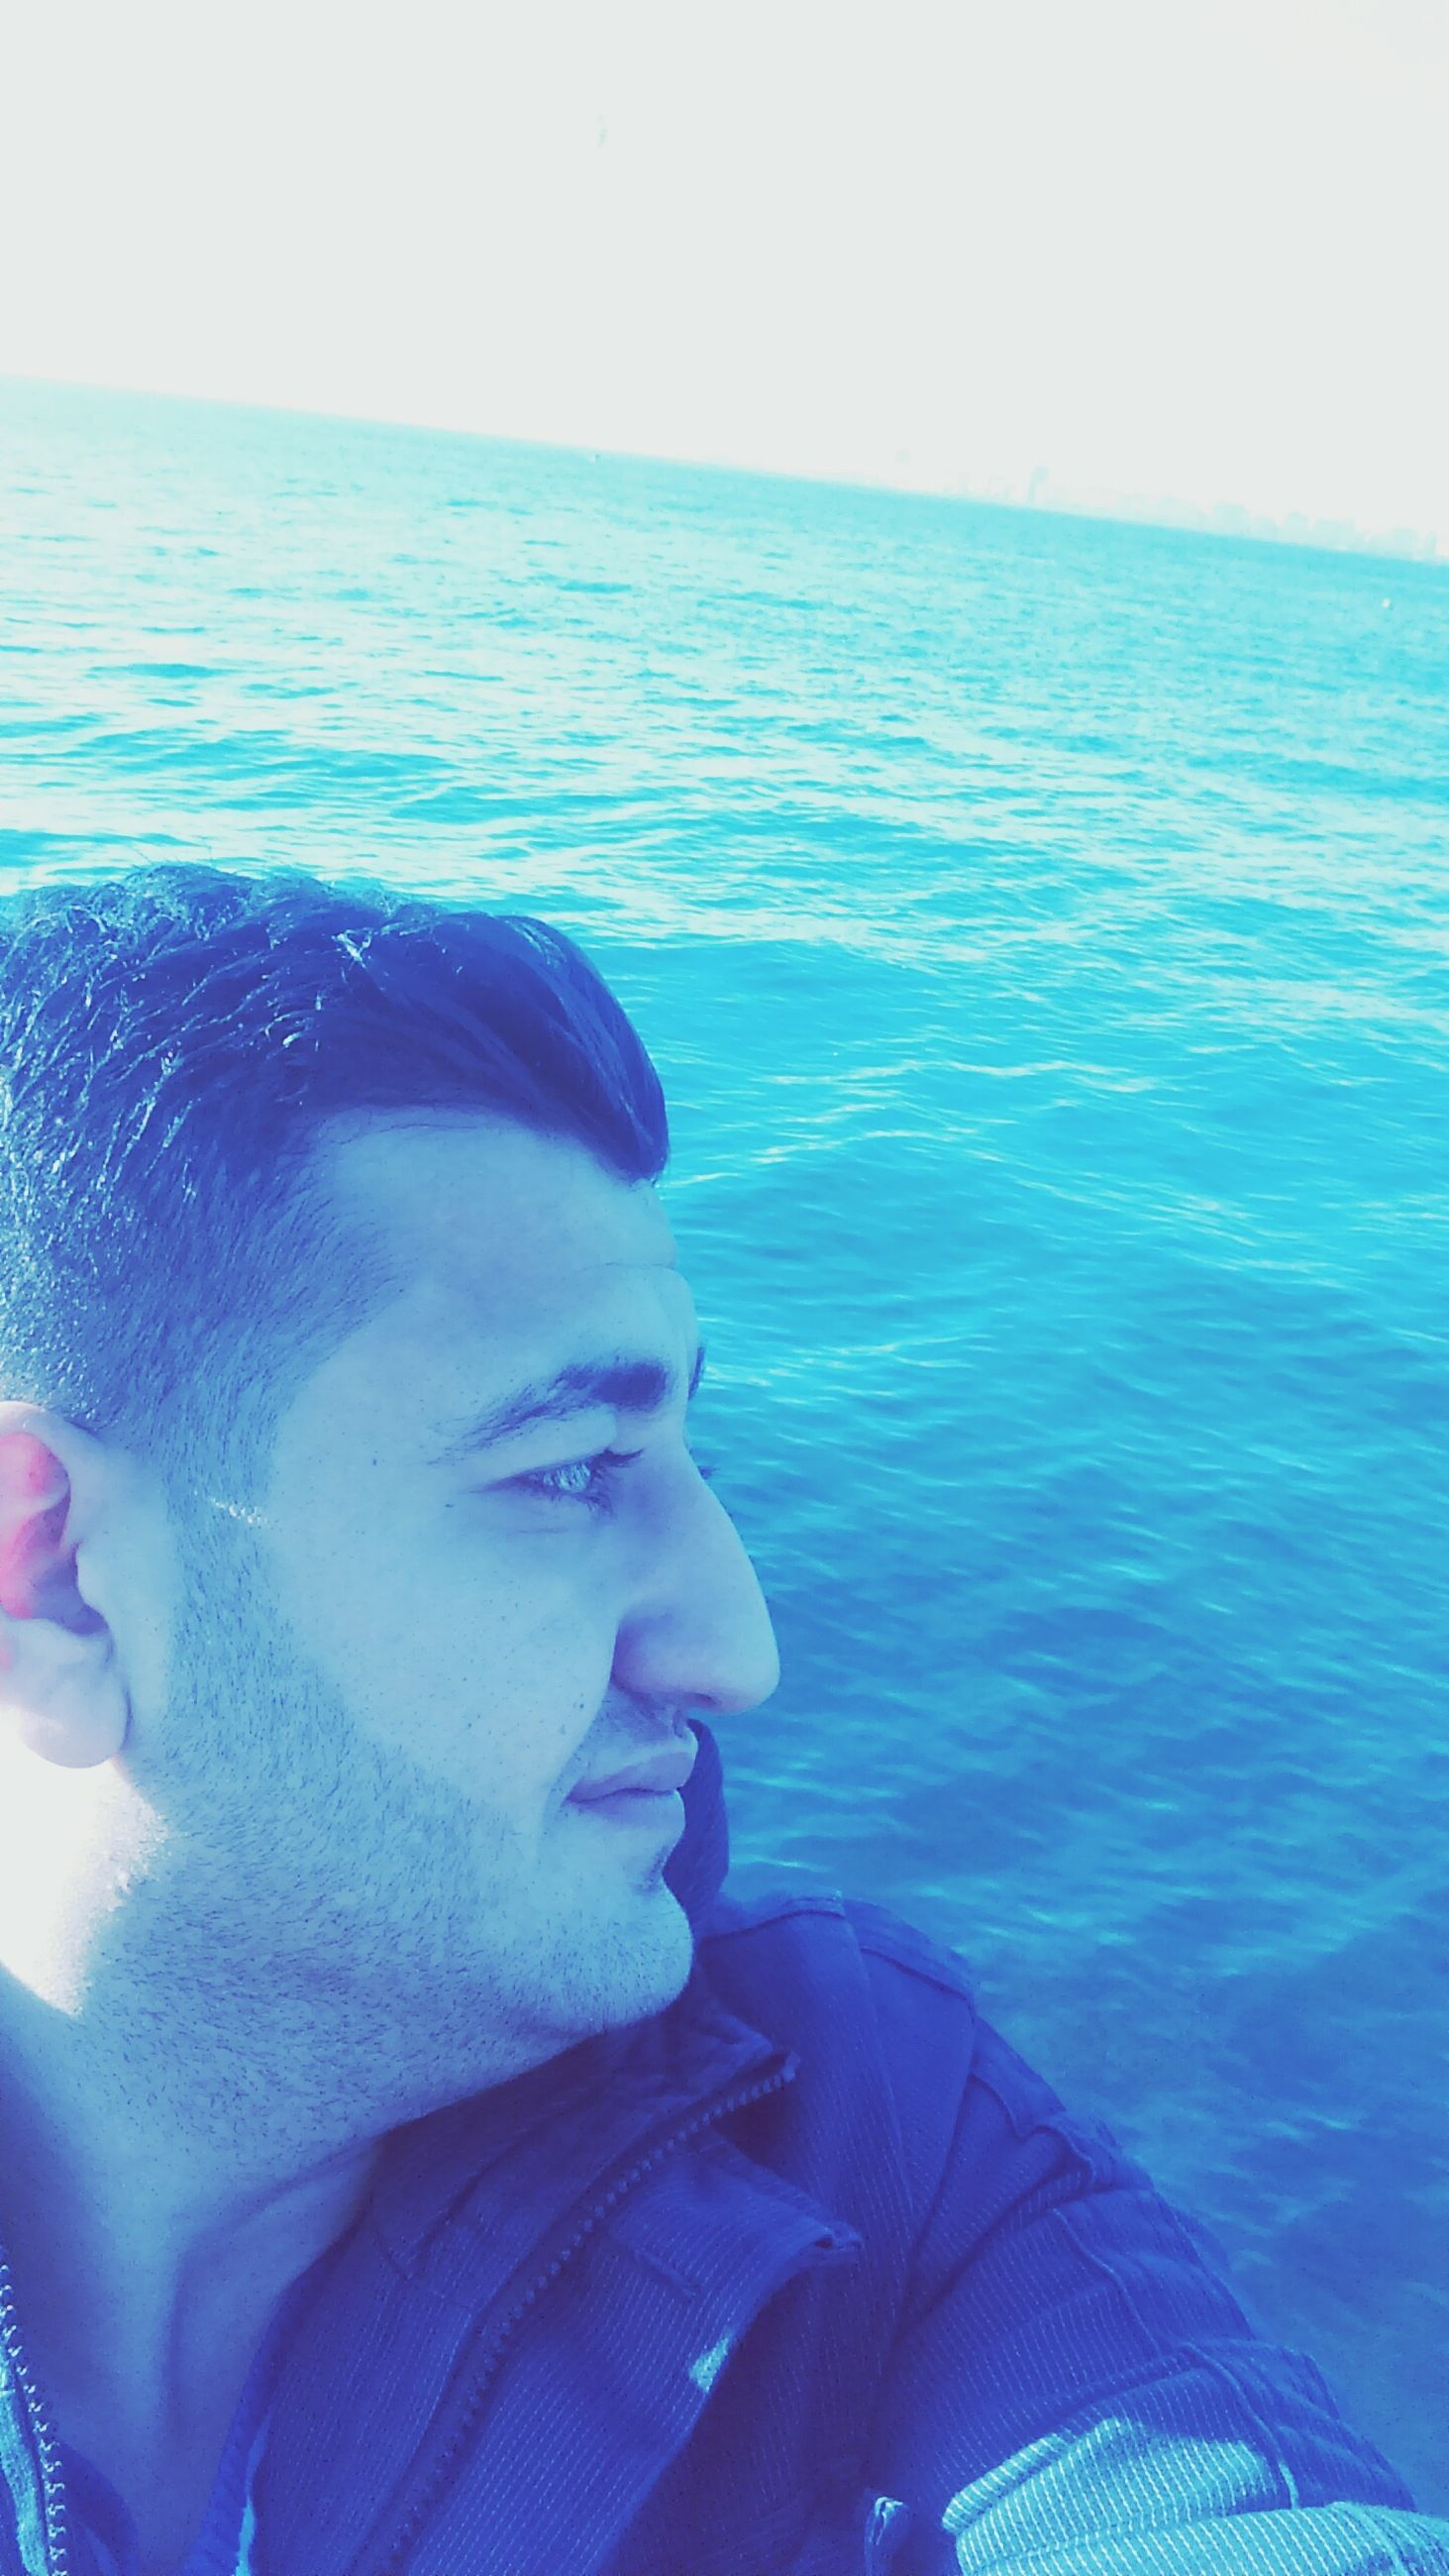 water, sea, lifestyles, leisure activity, headshot, blue, young adult, horizon over water, vacations, nature, men, head and shoulders, sunlight, relaxation, beauty in nature, swimming, day